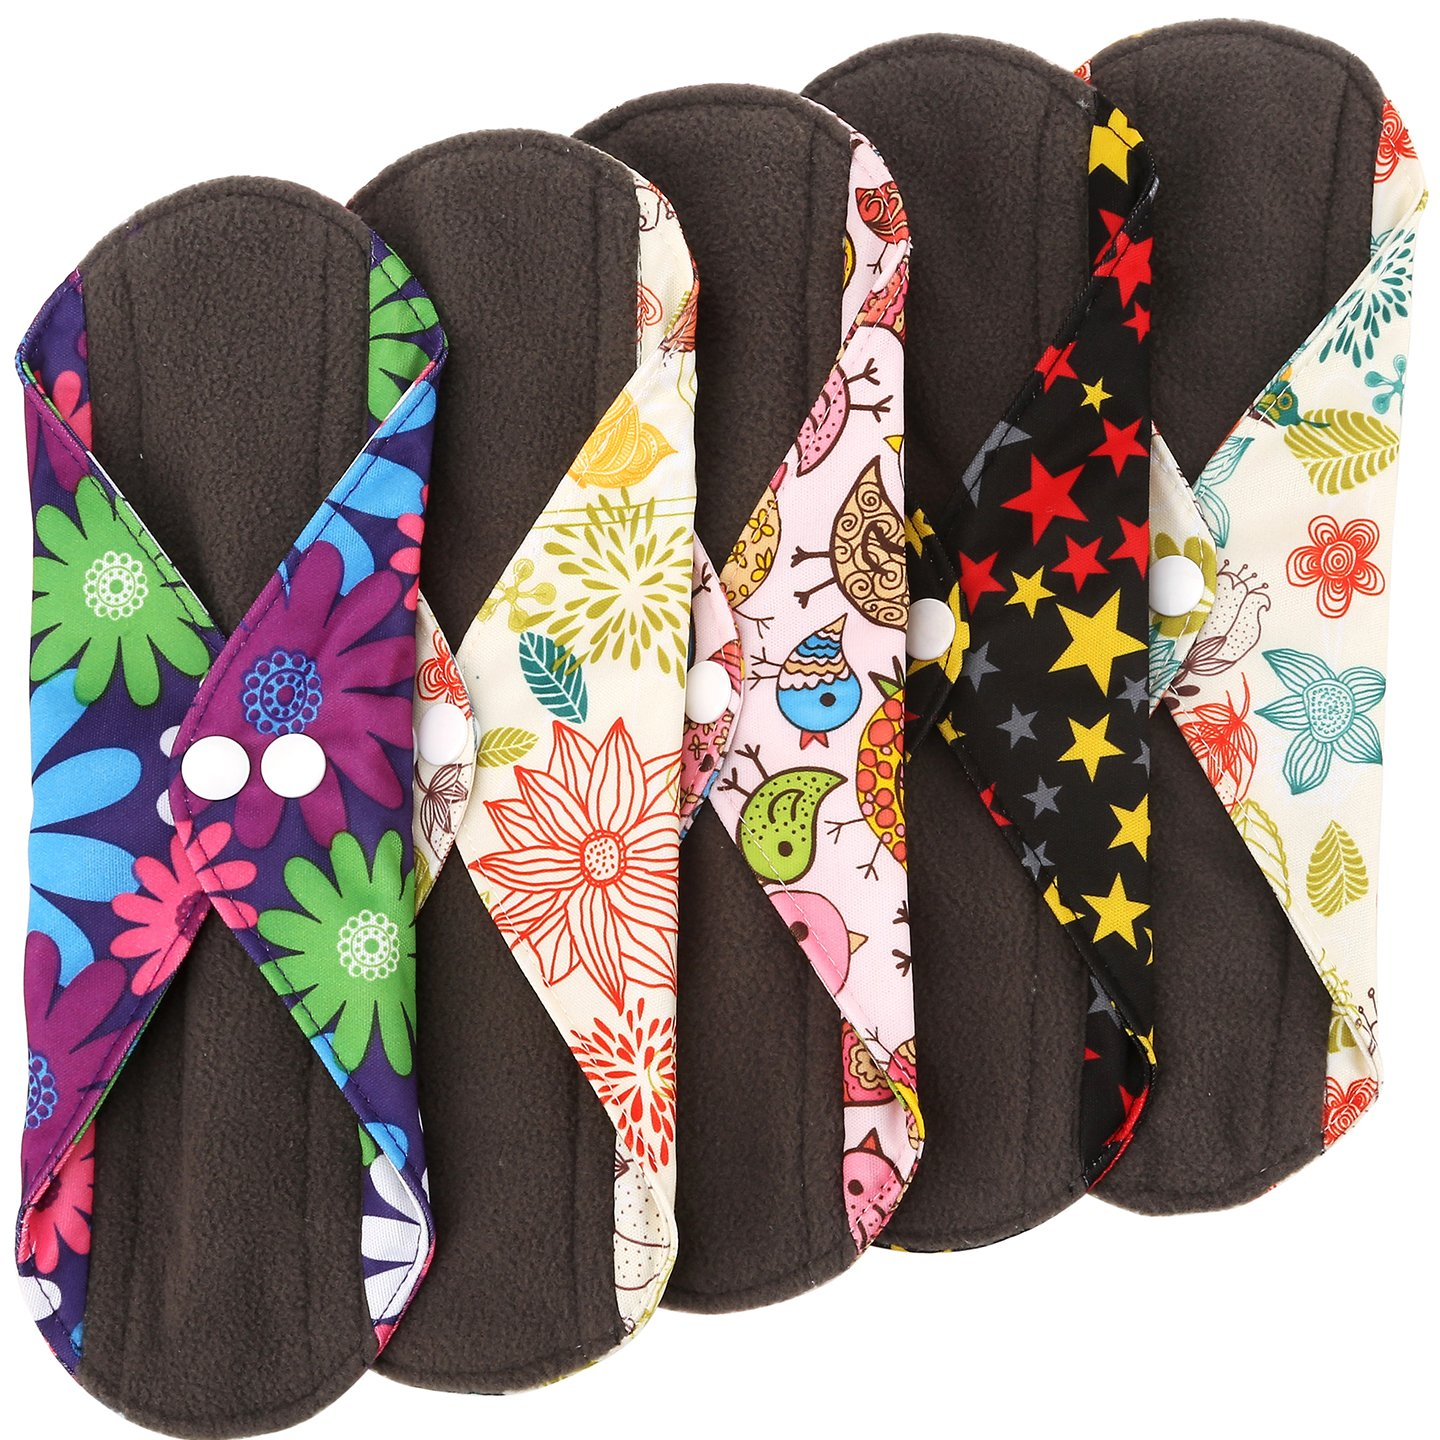 Wegreeco Bamboo Reusable Sanitary Pads - Cloth Sanitary Pads - Pack of 5 (Small, Mix Prints)